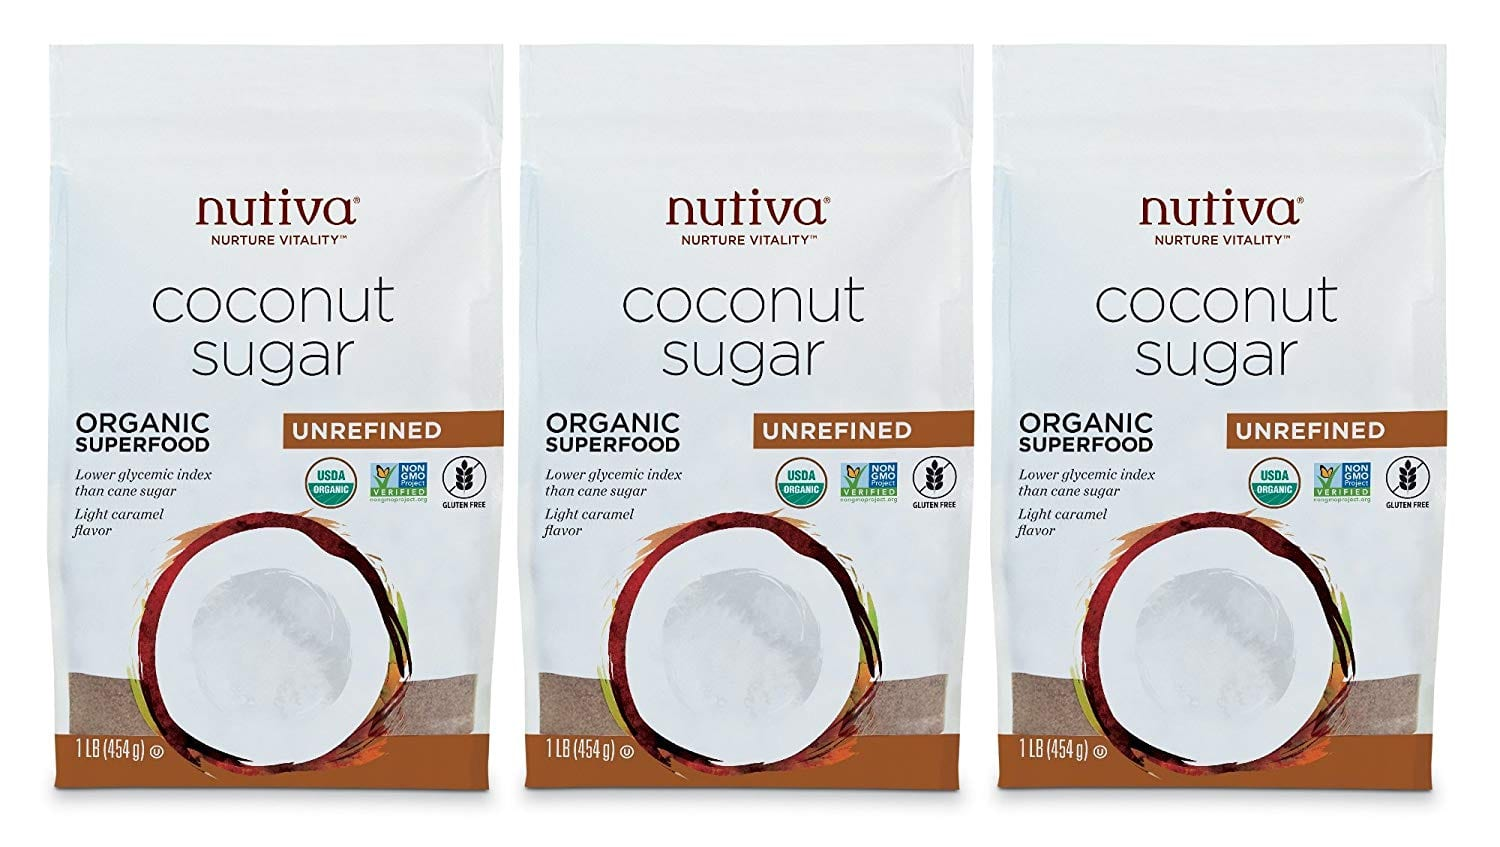 Nutiva Organic, non-GMO, Unrefined Granulated Coconut Sugar, 1-pound (Pack of 3) for $5.56 w/ S&S + Free Shippping